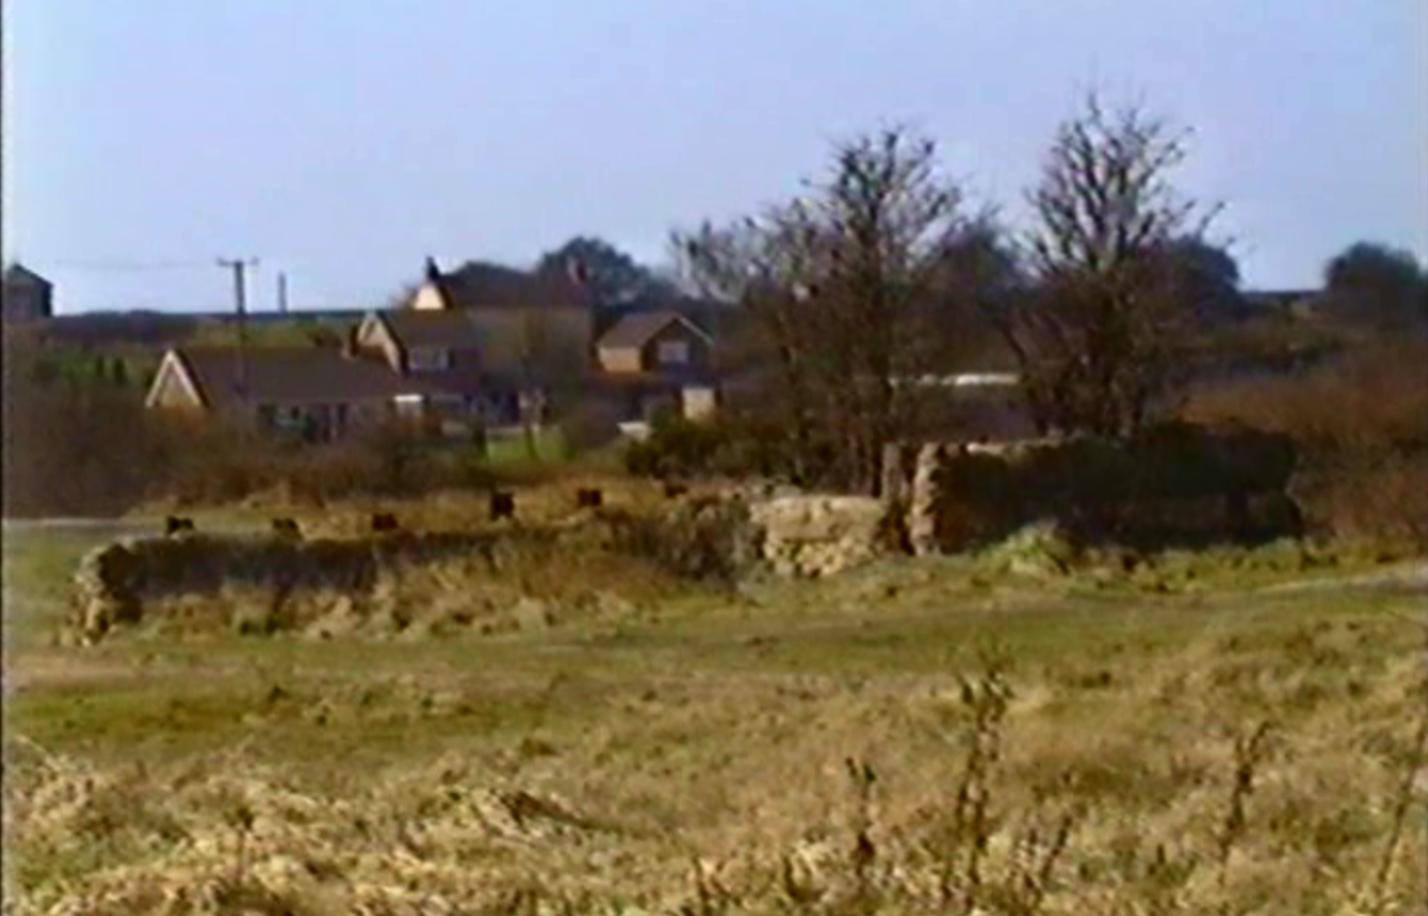 From 1993 video: Anglesey wharf drift remains